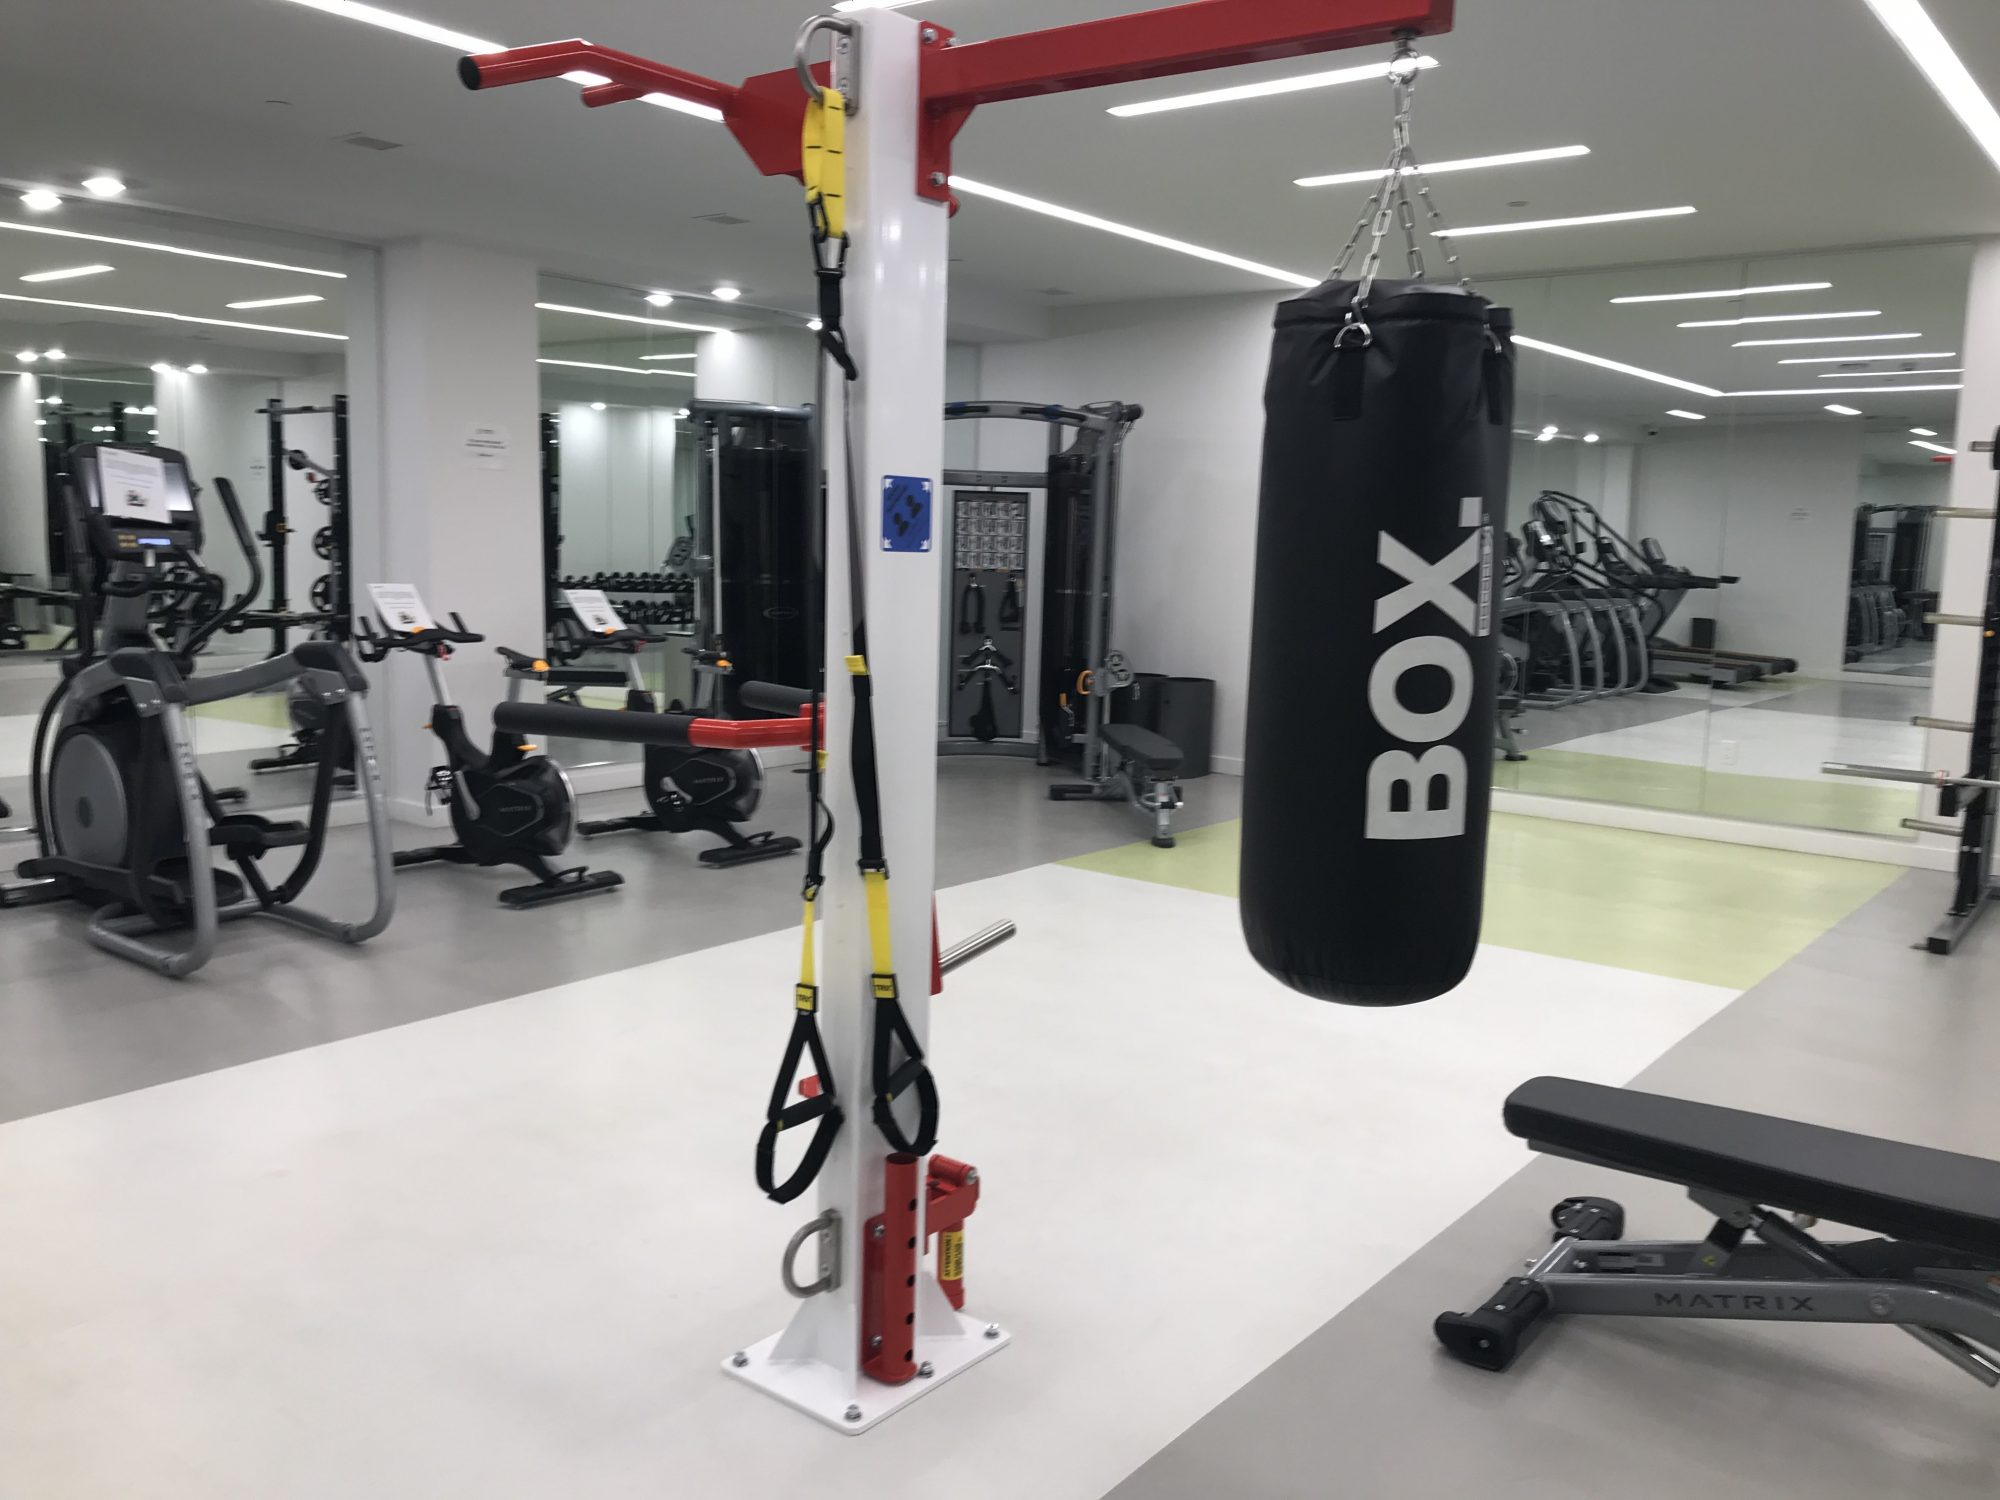 Have a bout in the gym